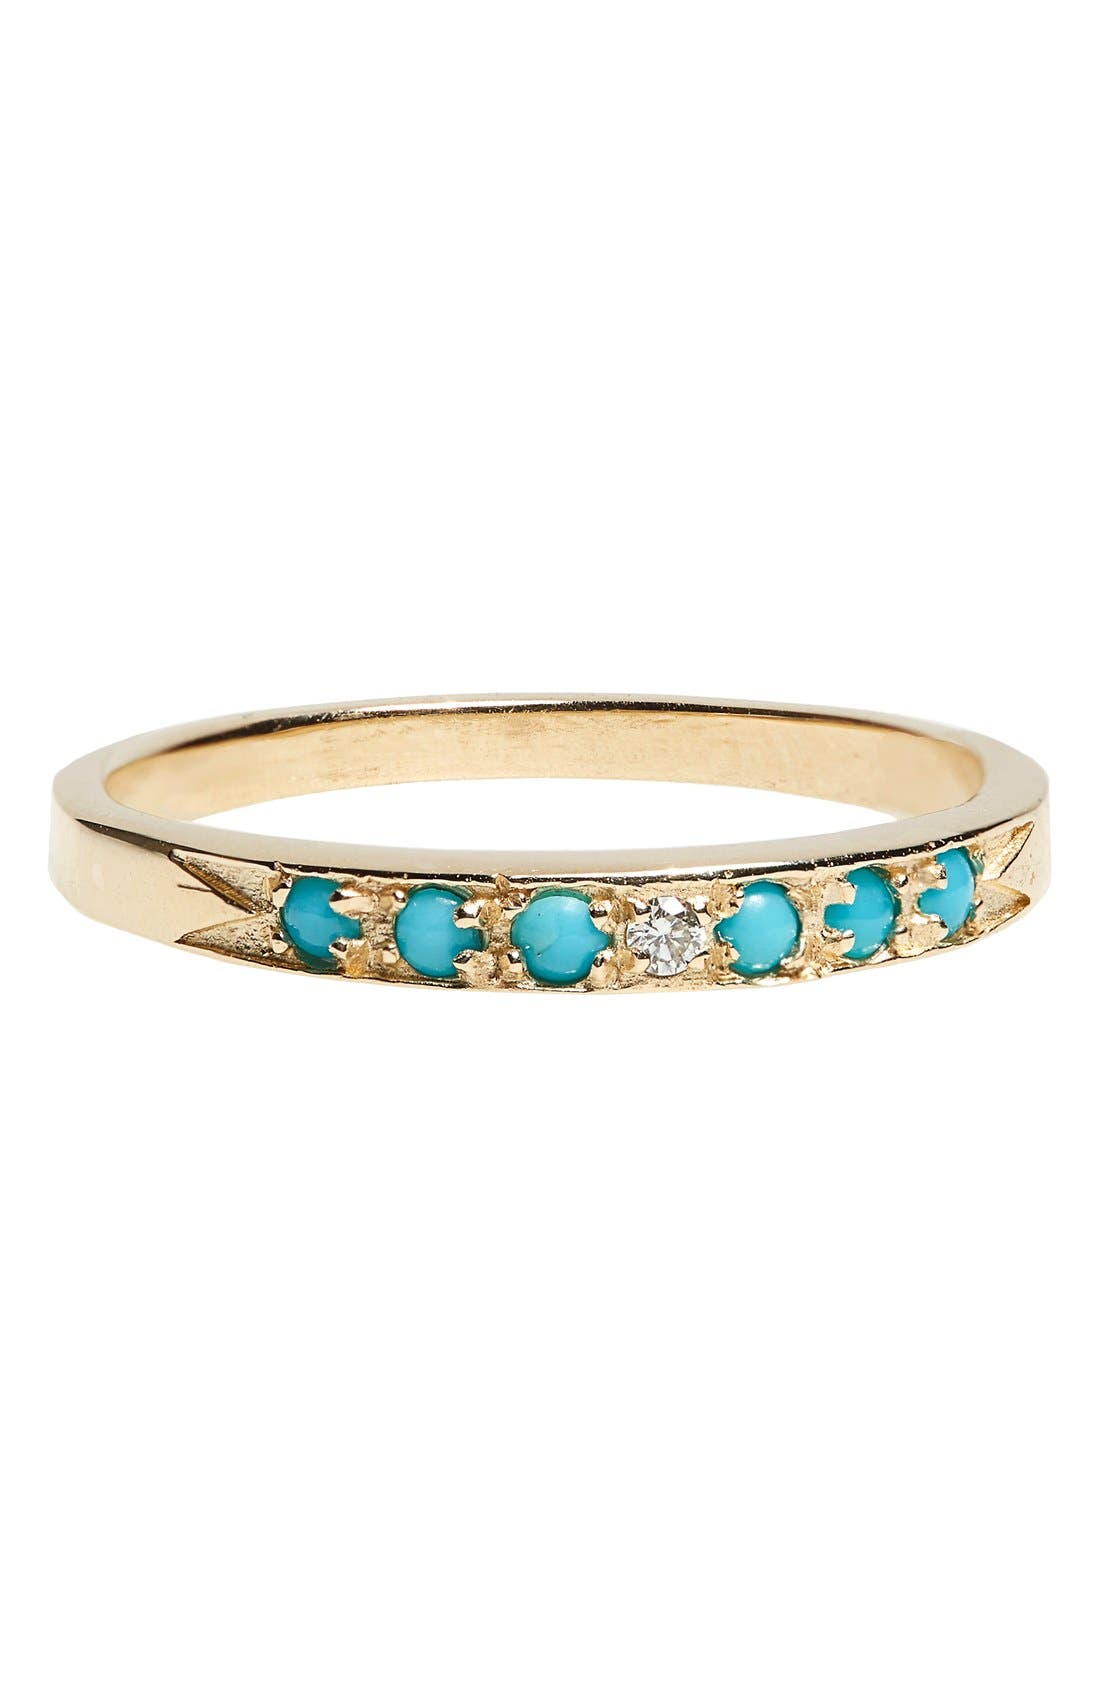 MOCIUN Moon & Stars Single Band Turquoise & Diamond Ring